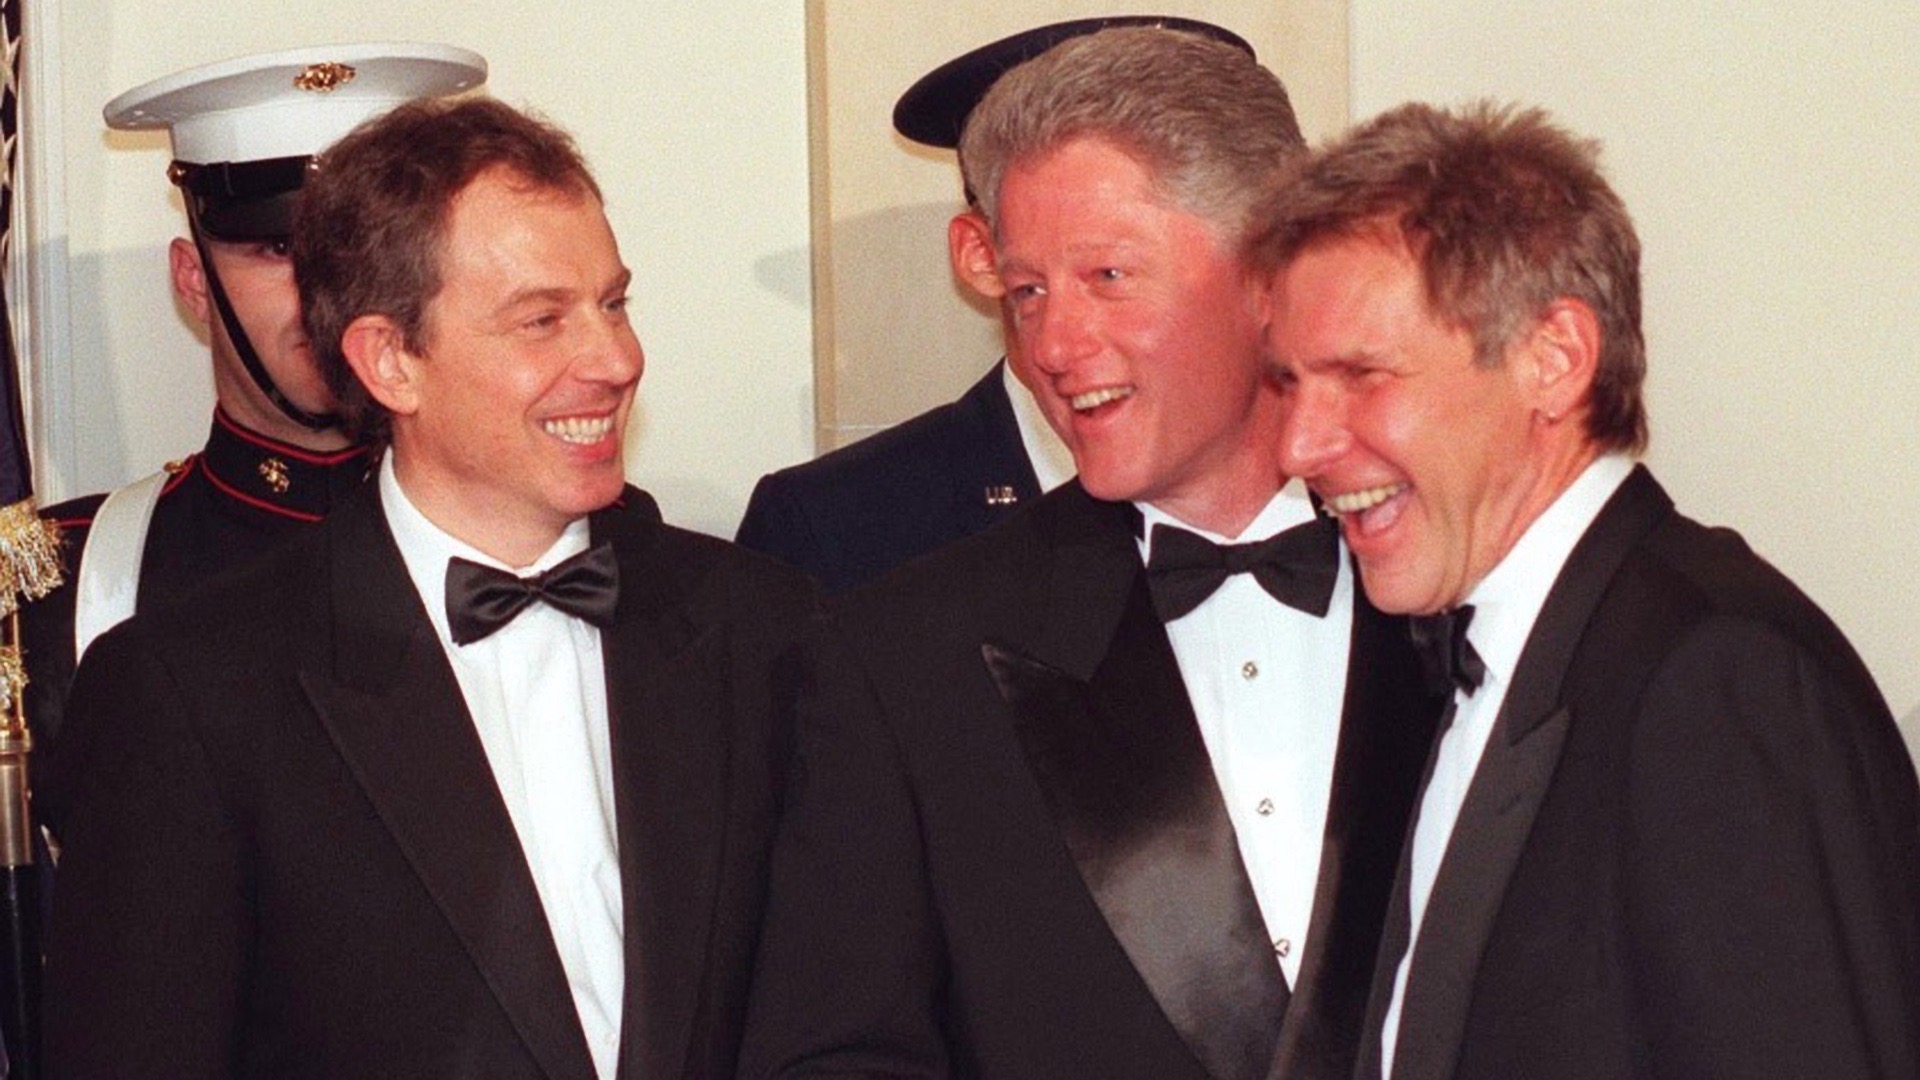 Tony Blair, Bill Clinton and Harrison Ford.